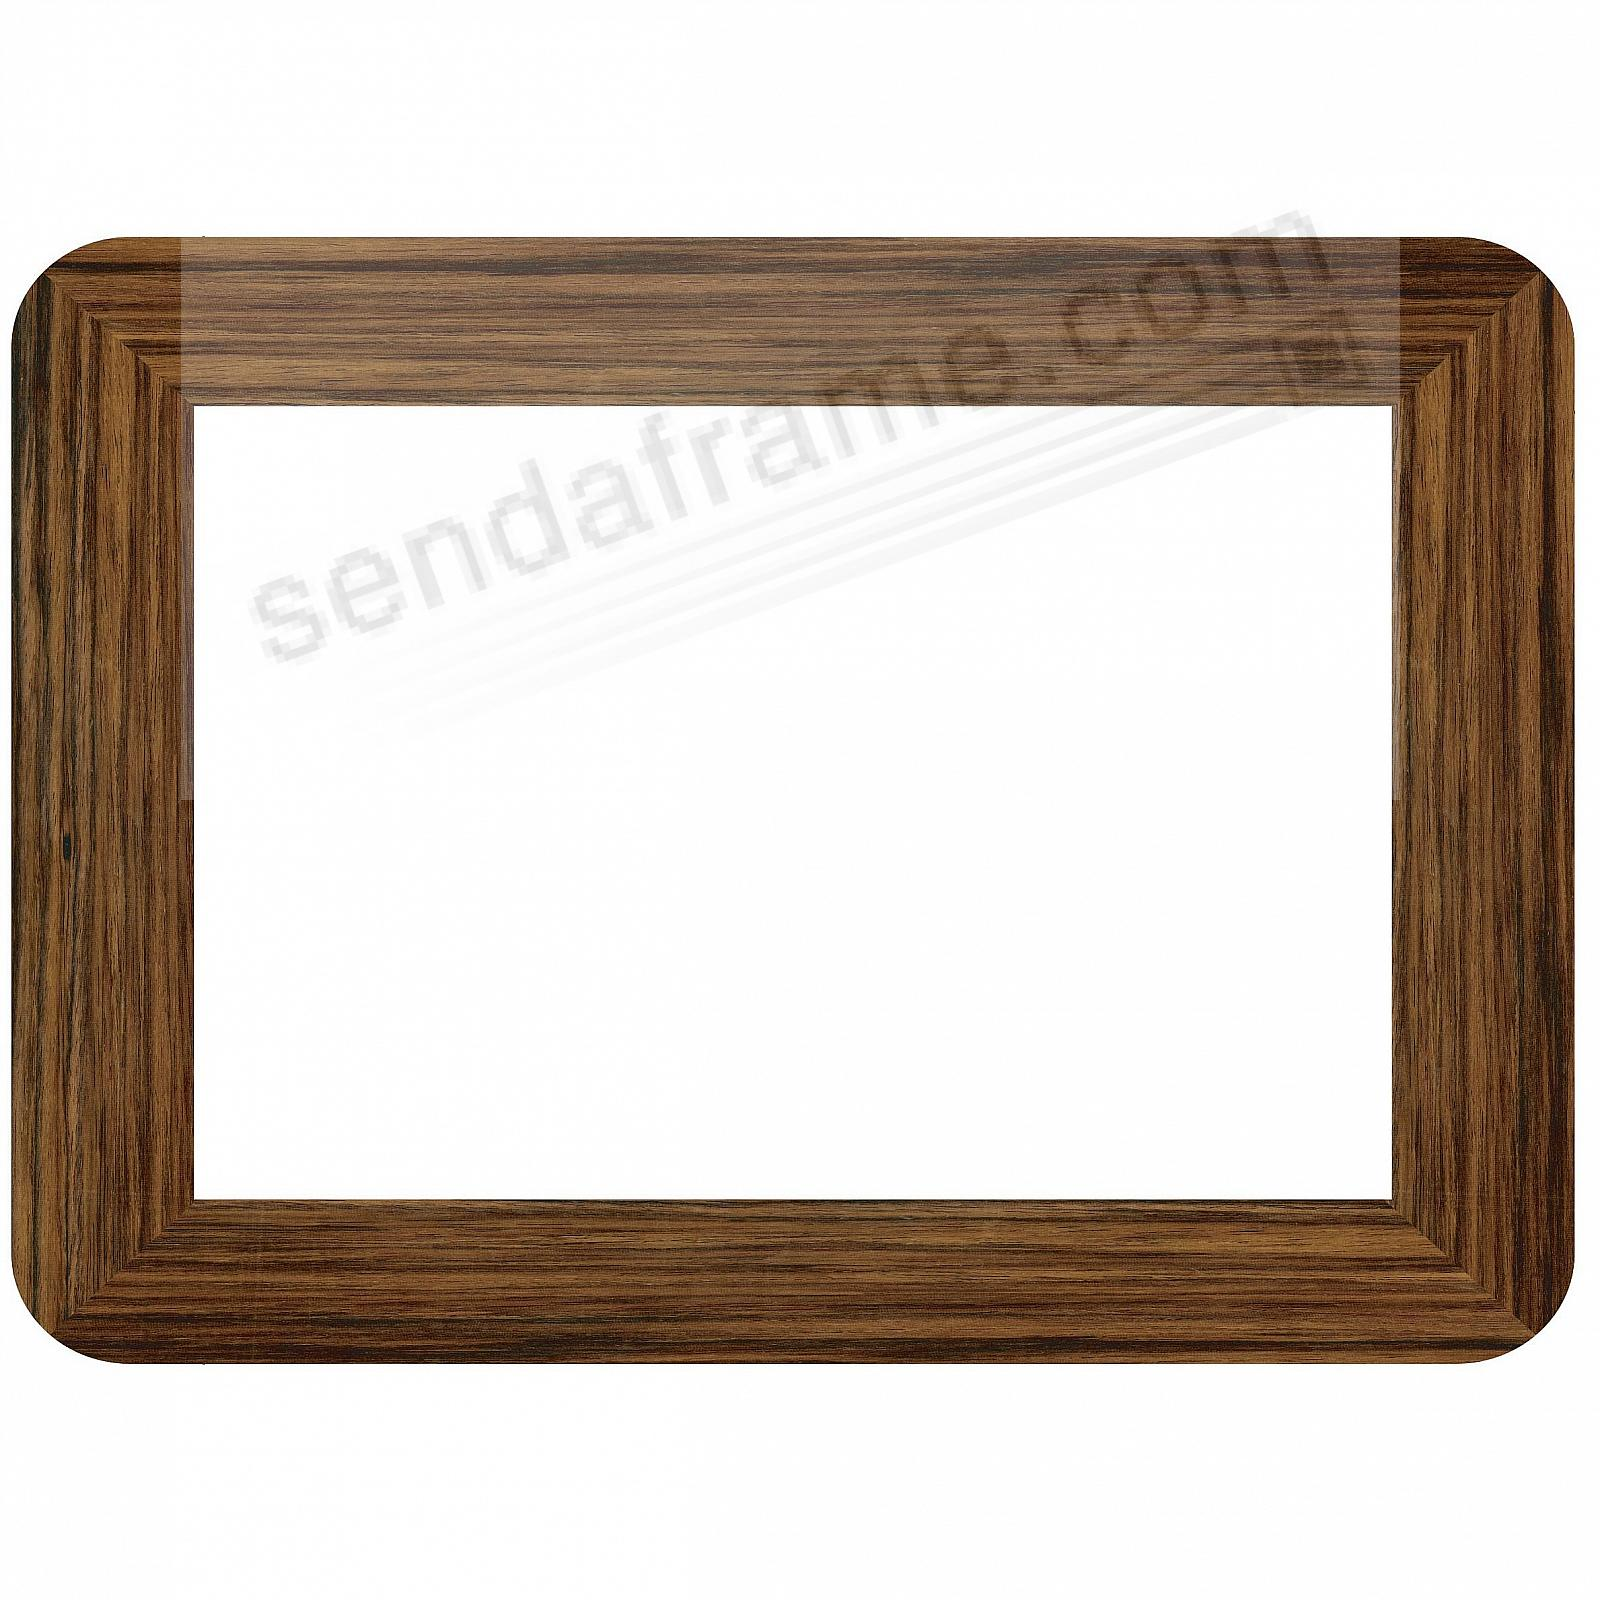 WOOD 4x6 Frame with Clear DRY ERASE™ by Fodeez™ SET OF 3